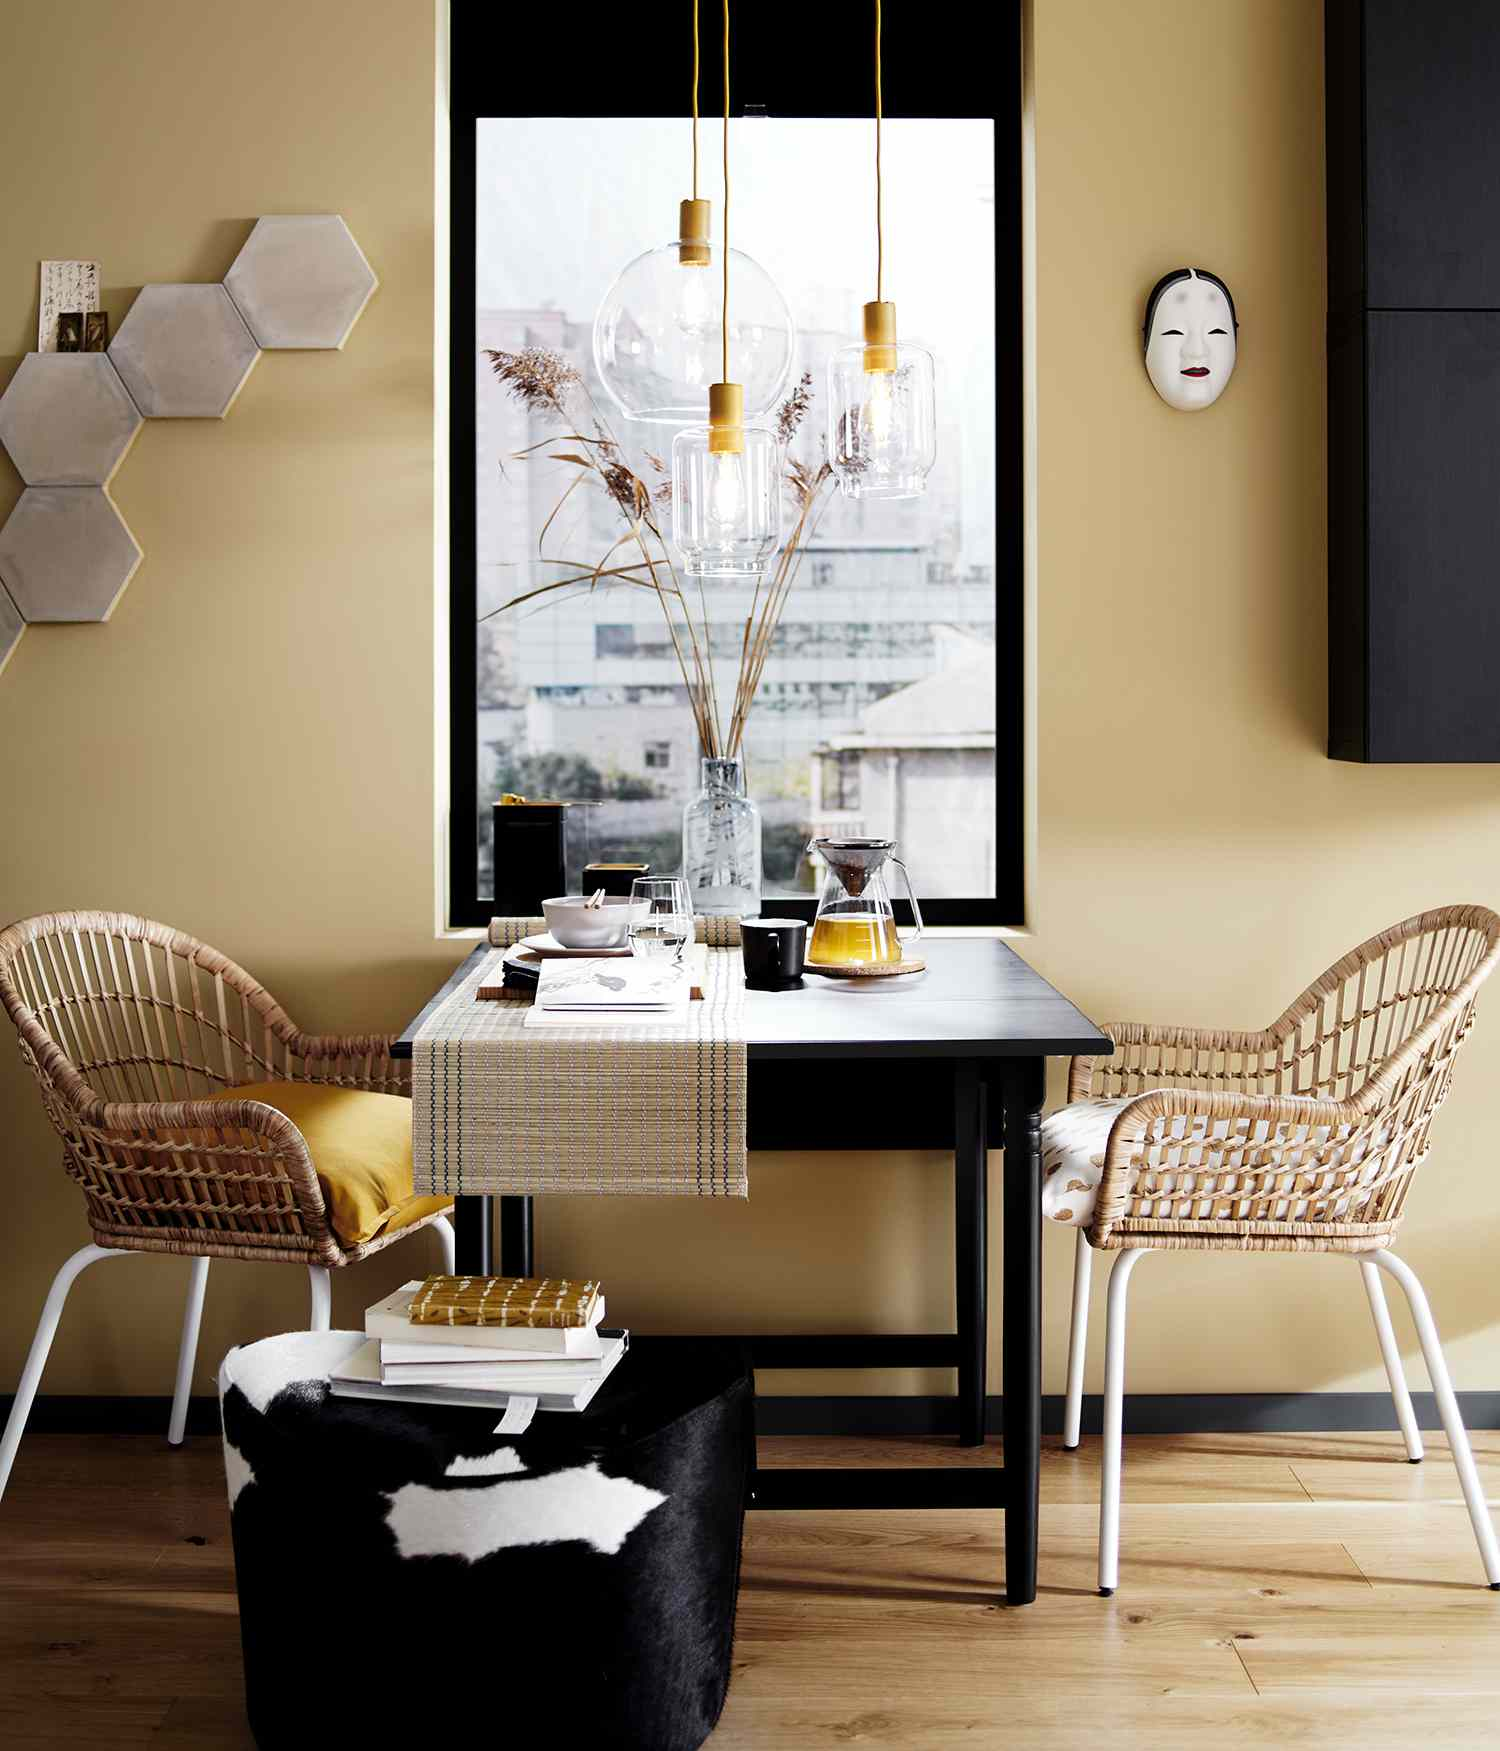 Rattan chairs in small space kitchen